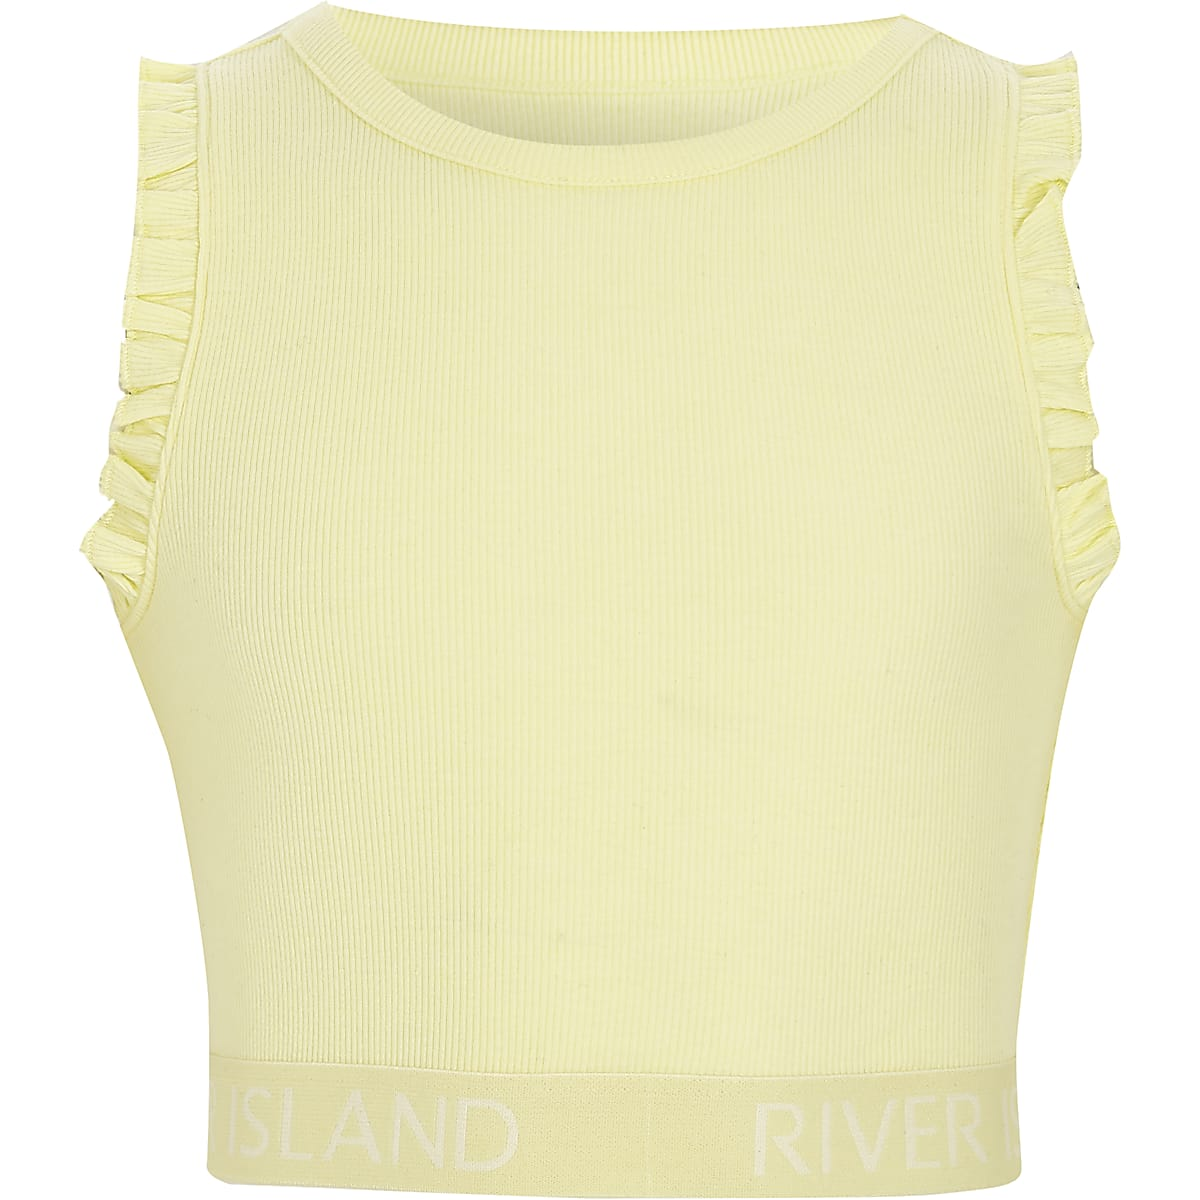 5baed3639b9 Girls yellow rib frill sleeve RI hem crop top - Vests & Camis - Tops - girls